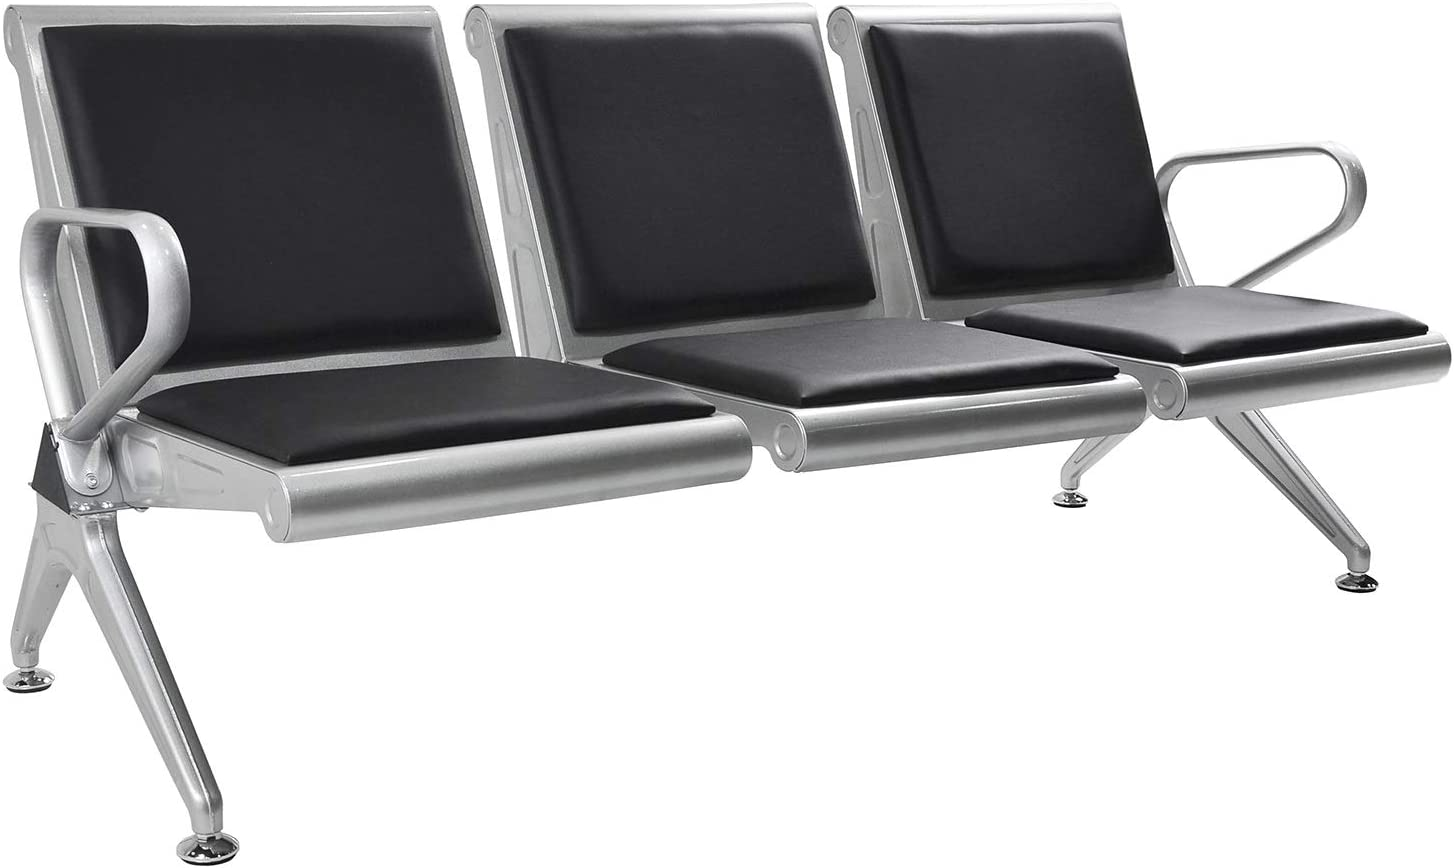 Bestmart 3-Seat Airport Reception Waiting Room Chair with PU Leather for School,Hospital,Barber Shop,Market